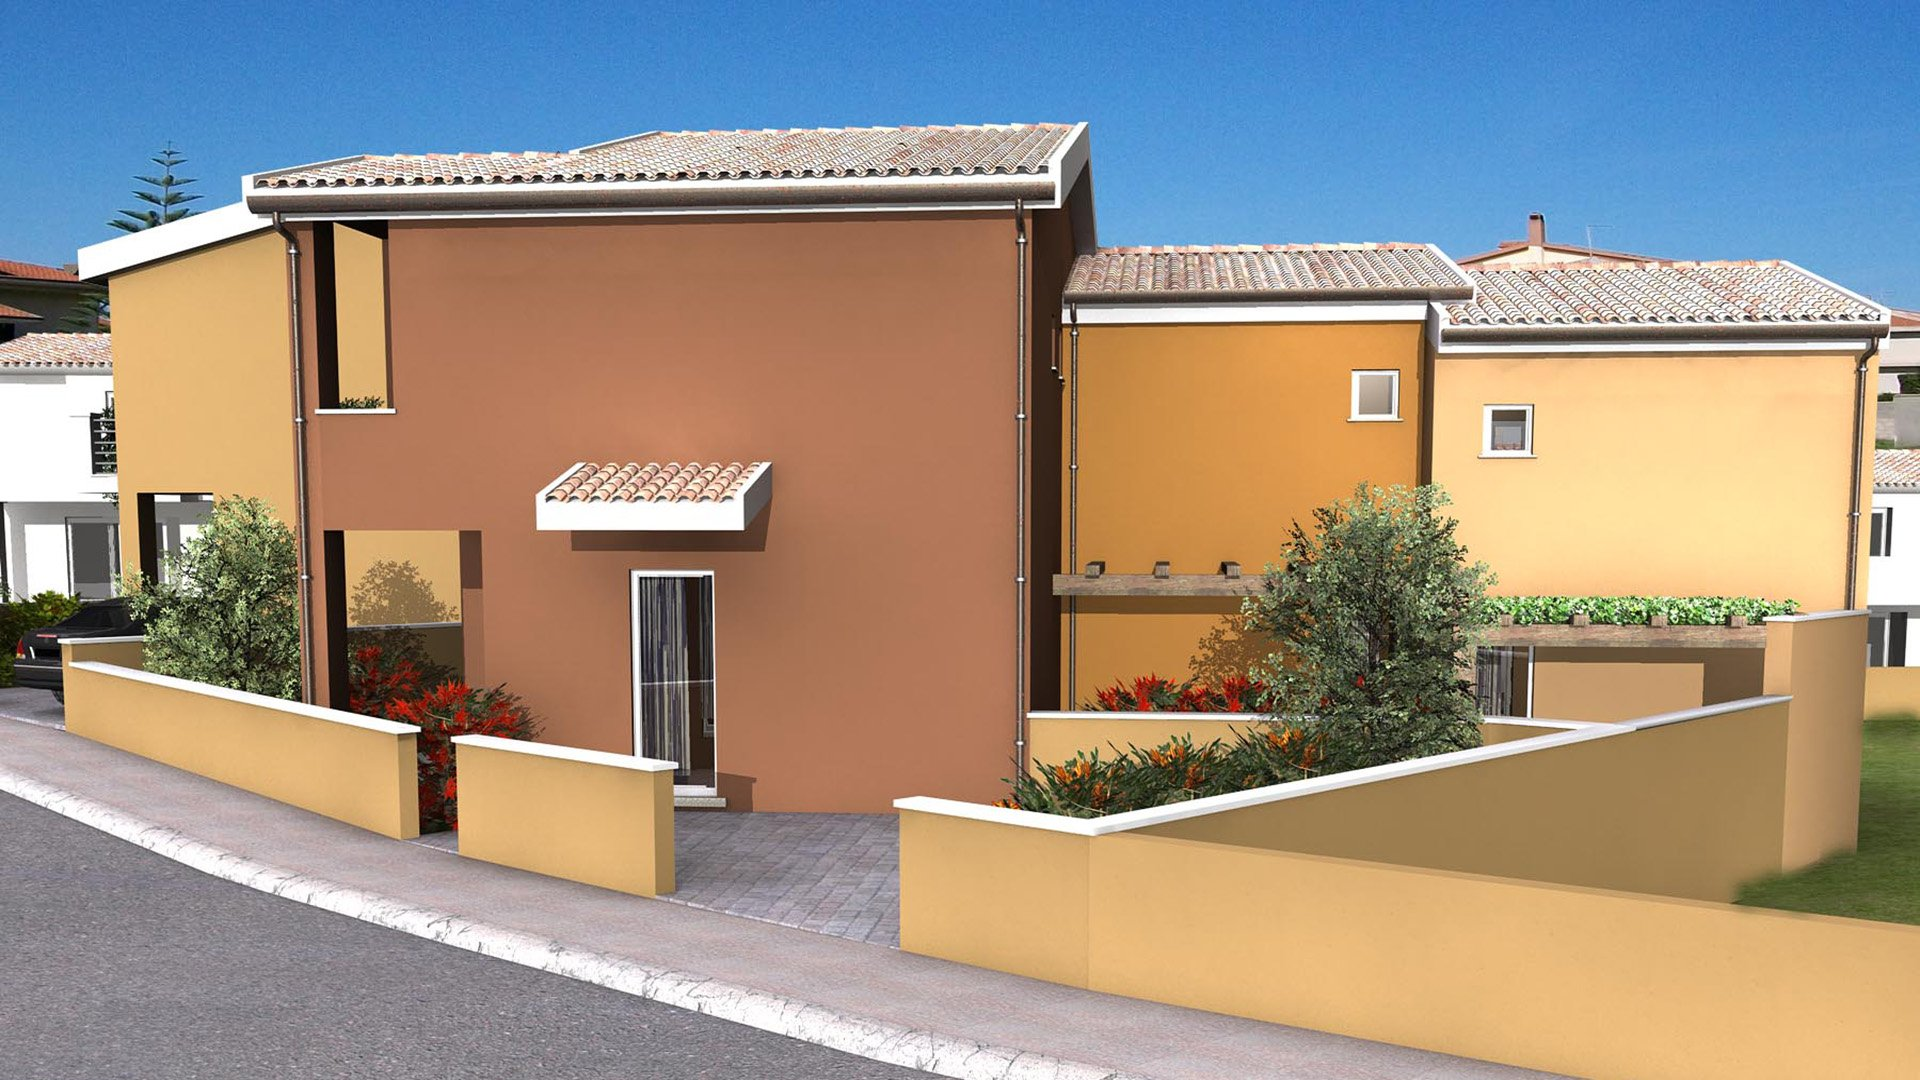 New property for sale in Sardinia? Cheap terraced houses in